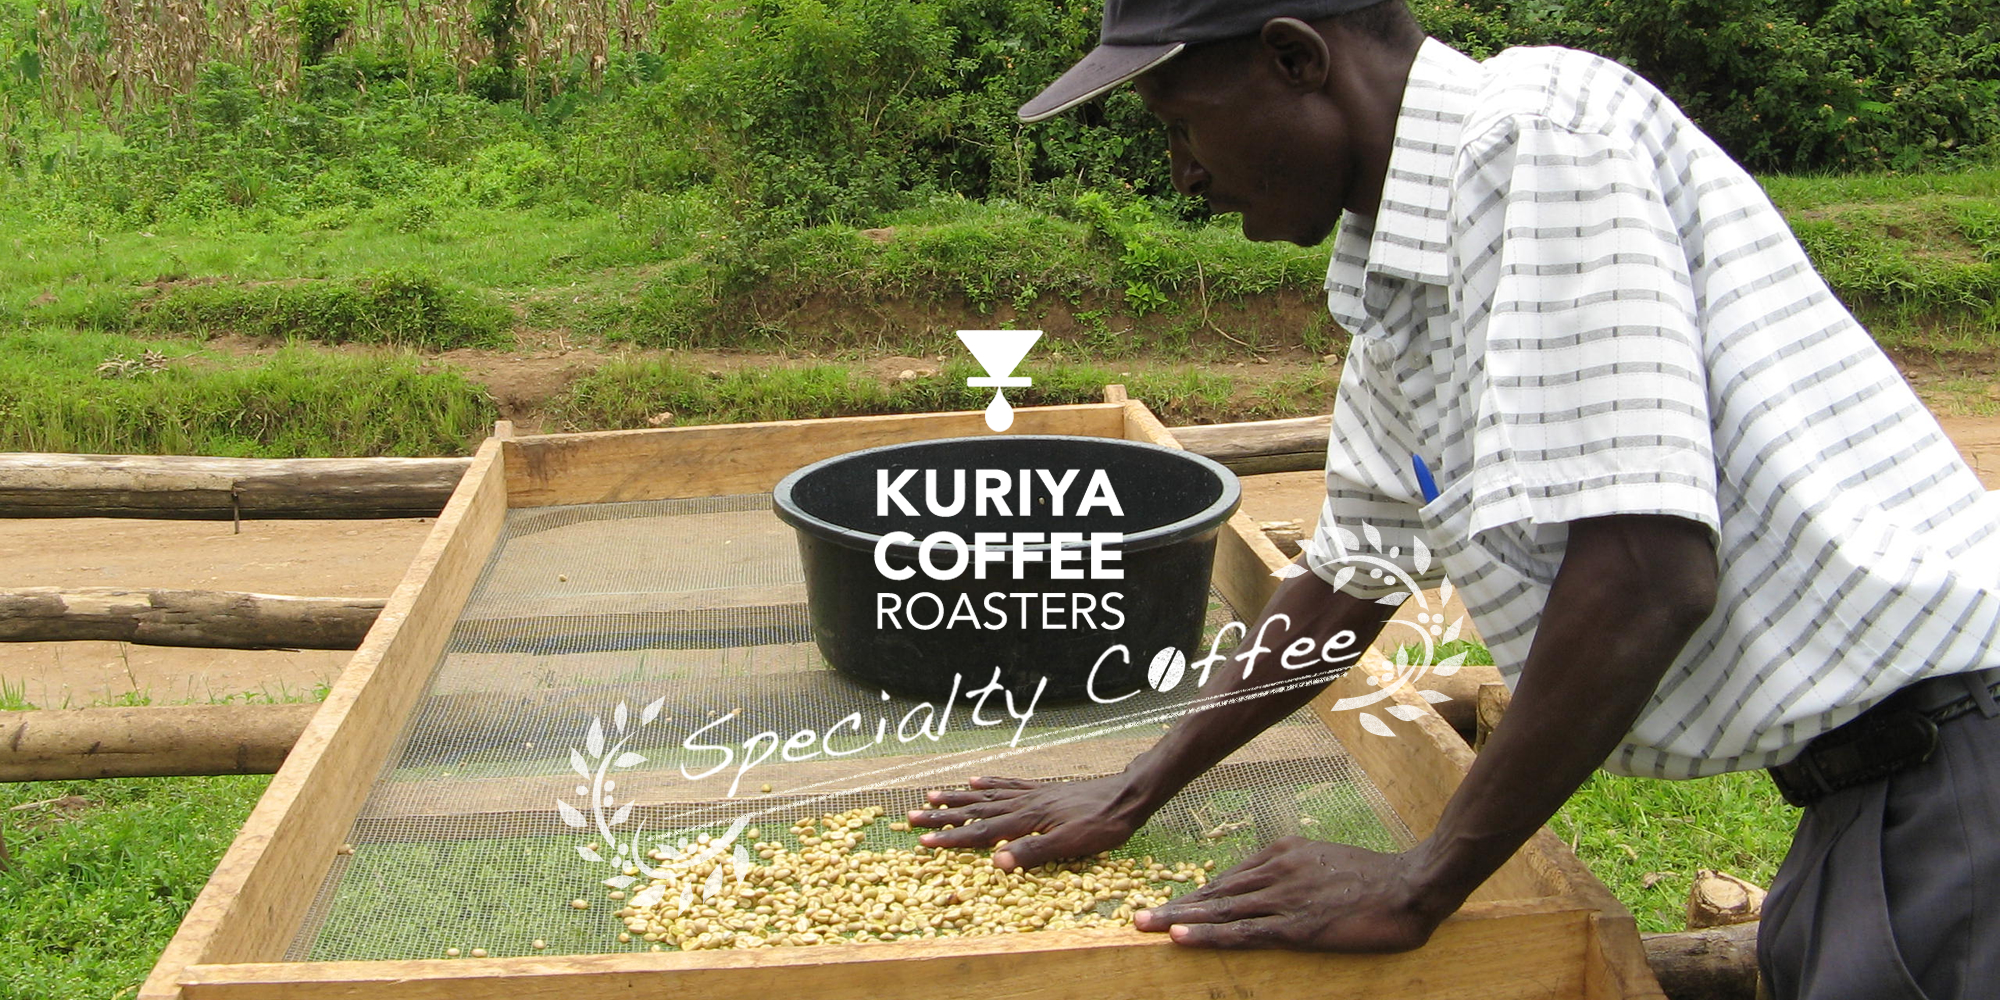 KURIYA COFFEE ROASTERS